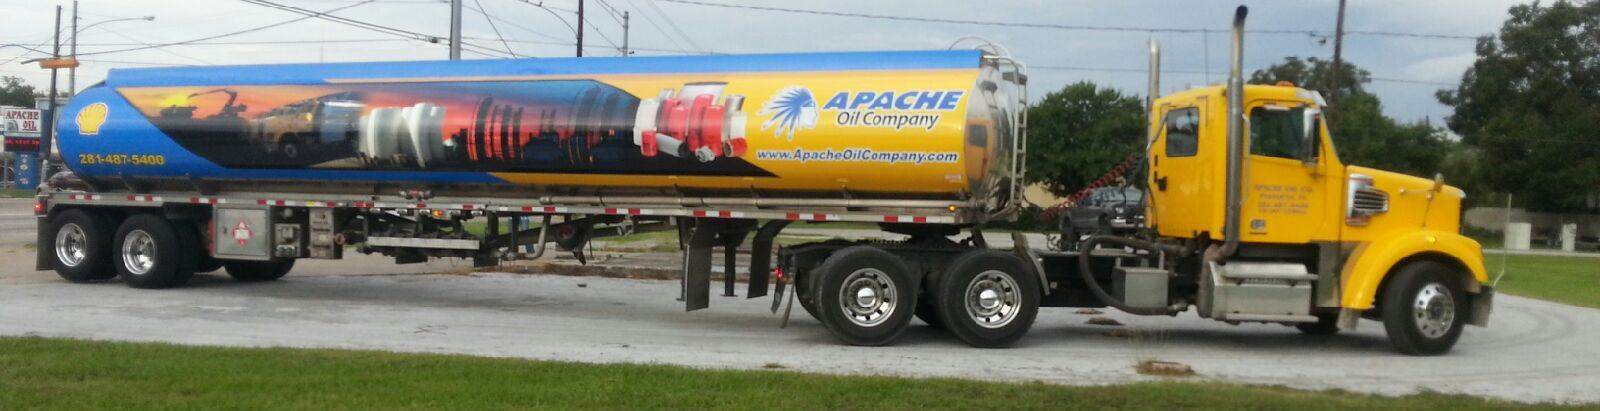 Apache Oil Company's Fuel Delivery Tankers